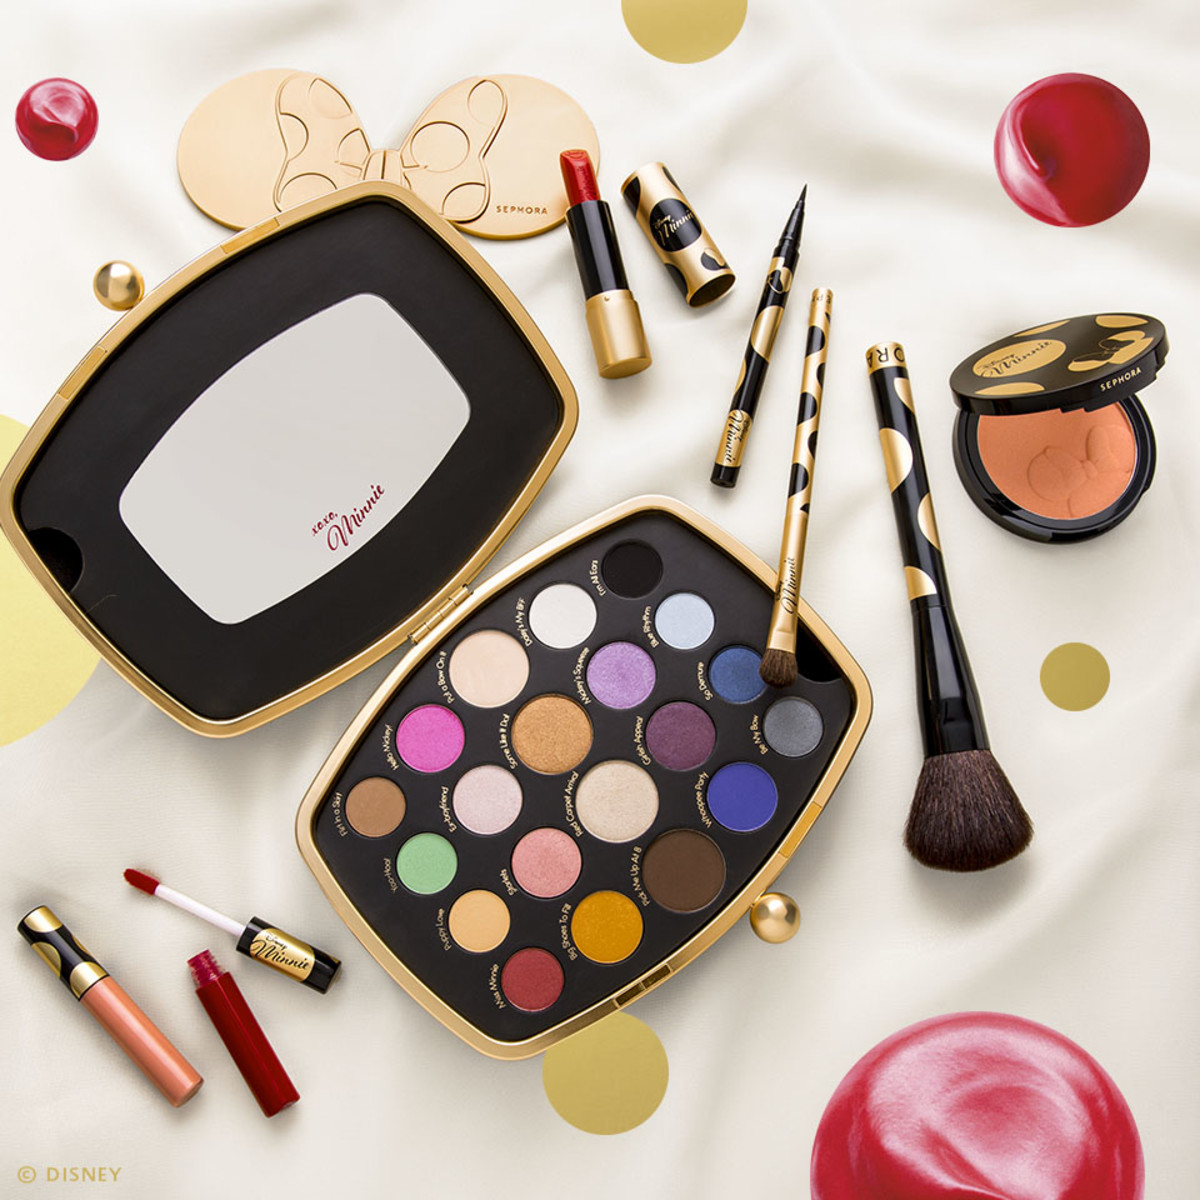 A selection of products from the Sephora x Minnie Mouse collection, available at Sephora. Photo: Courtesy of Disney